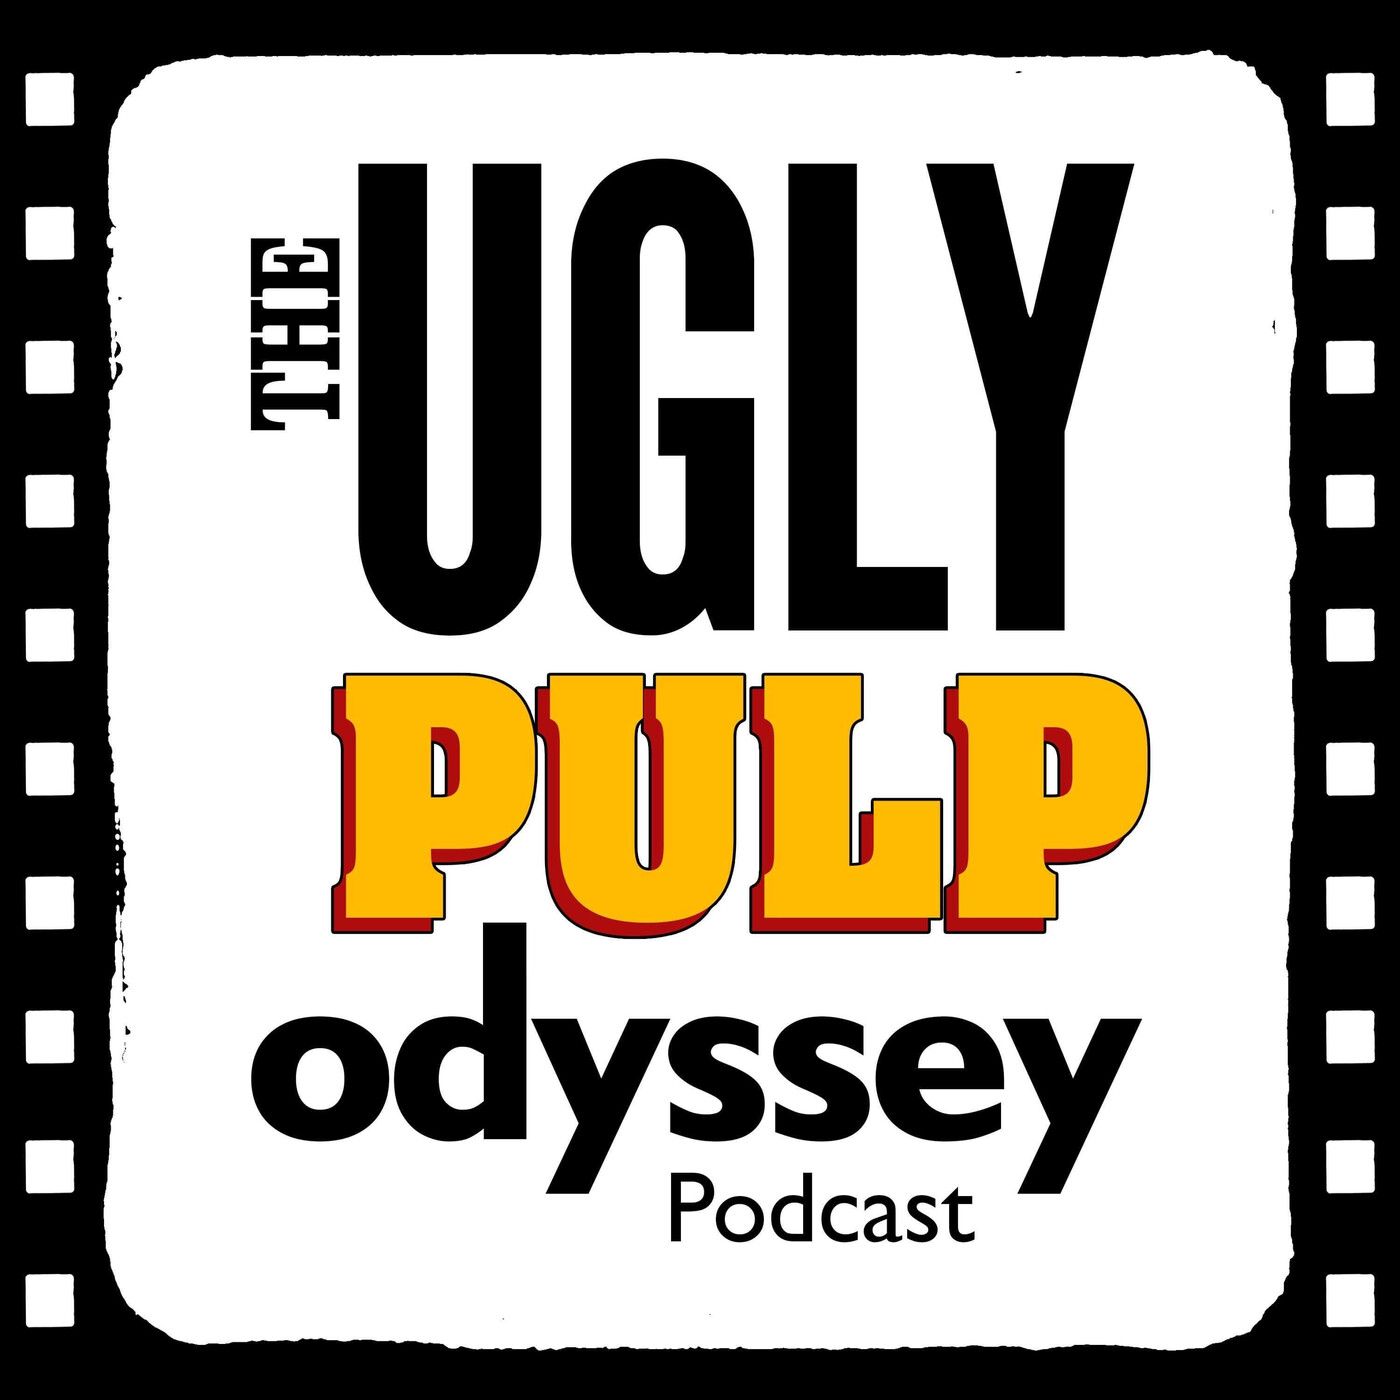 Ep. 1 - The Ugly Pulp Odyssey Begins